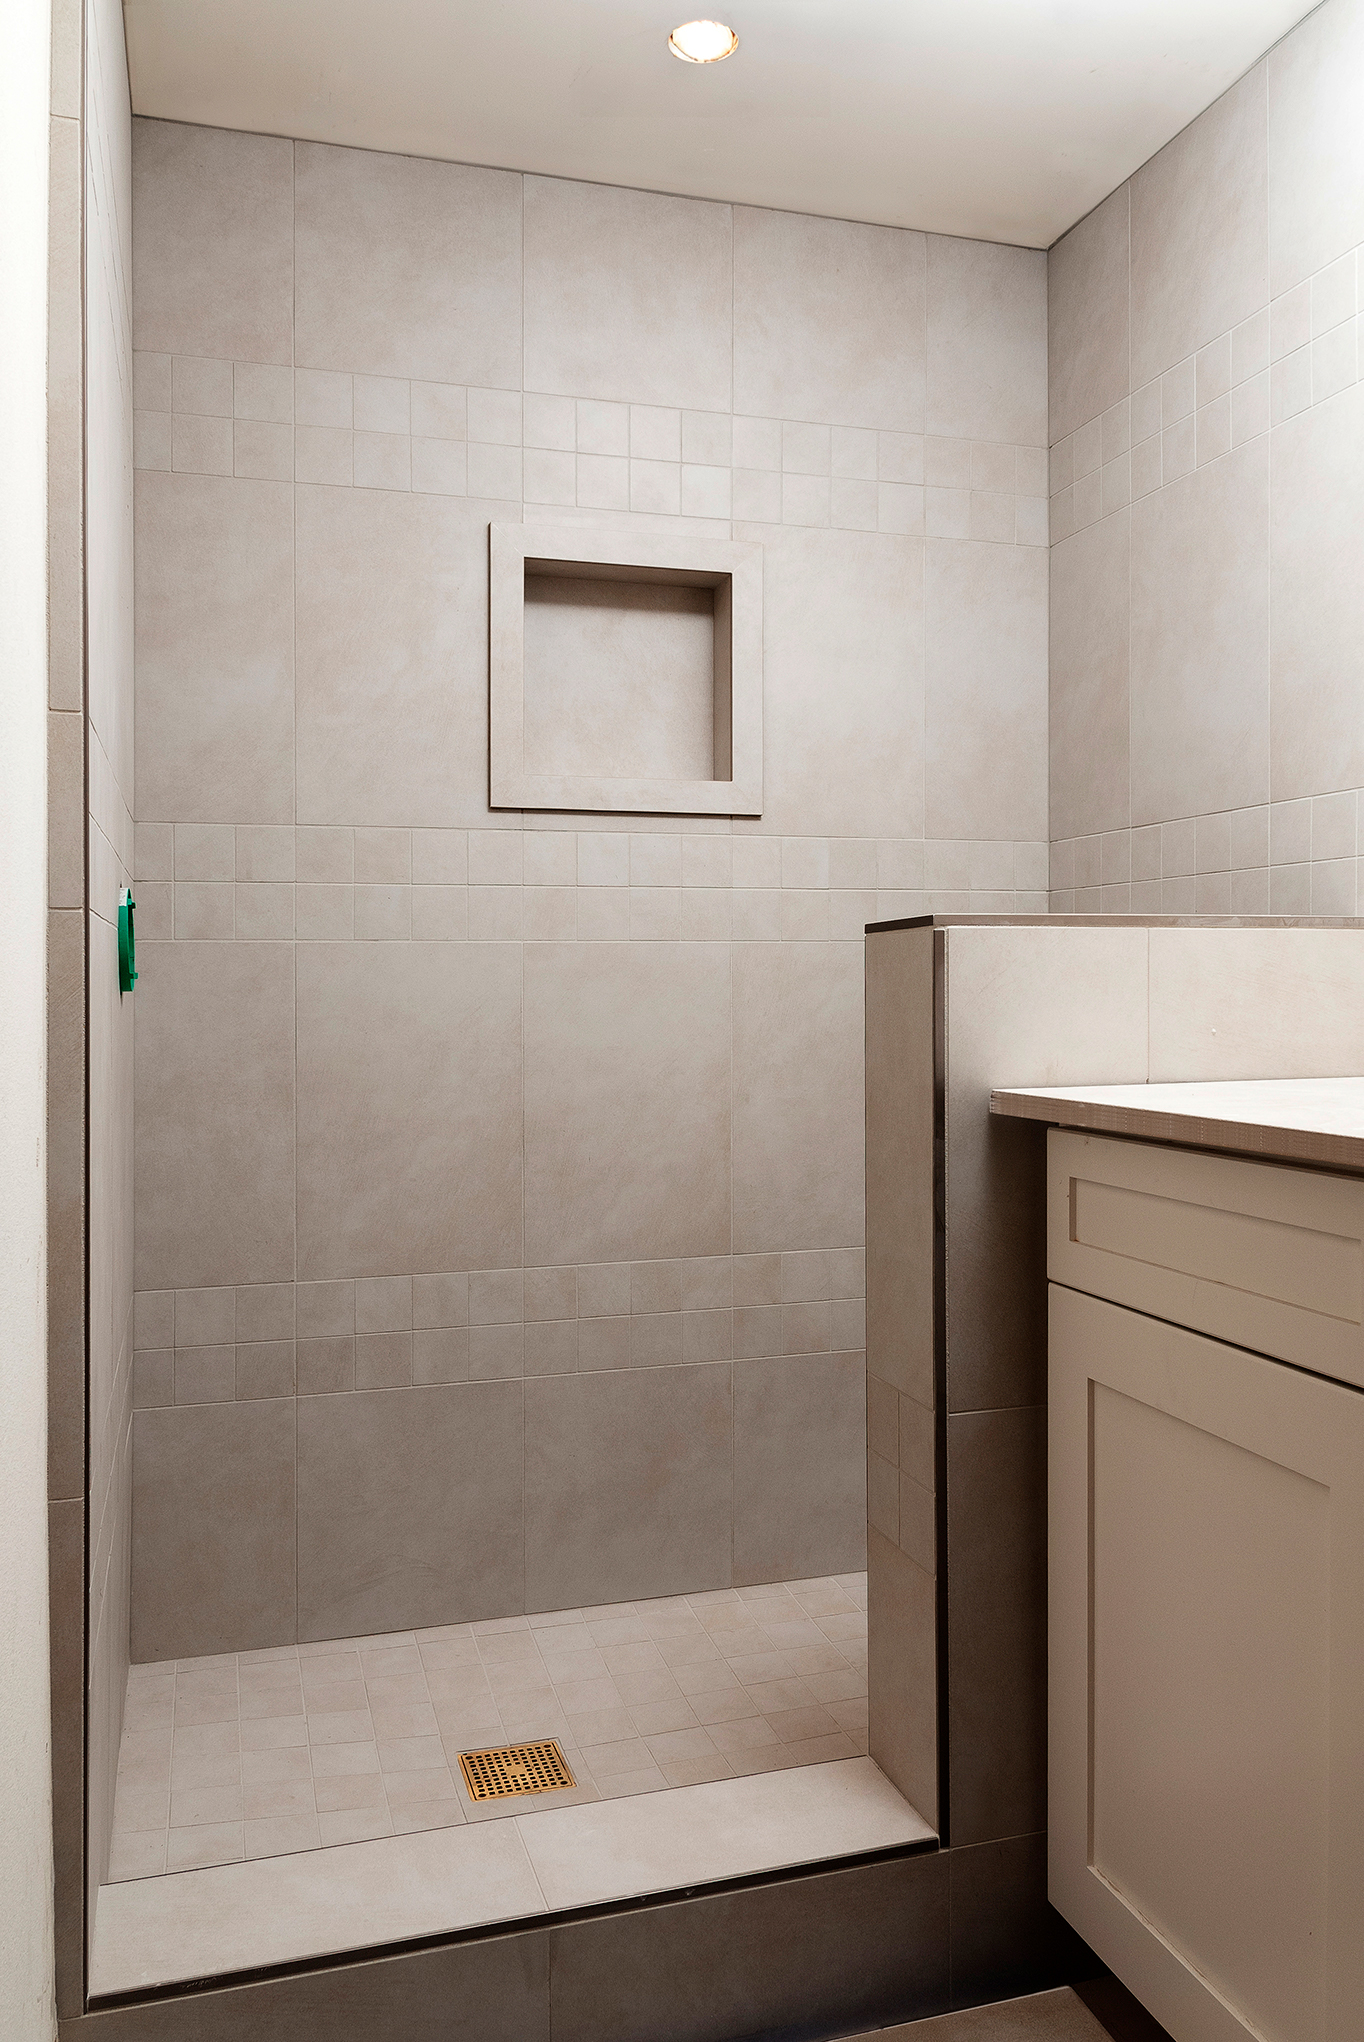 New Partner Kwifkit Tile Systems American Home Remodeling - Kwik fit bathroom remodel